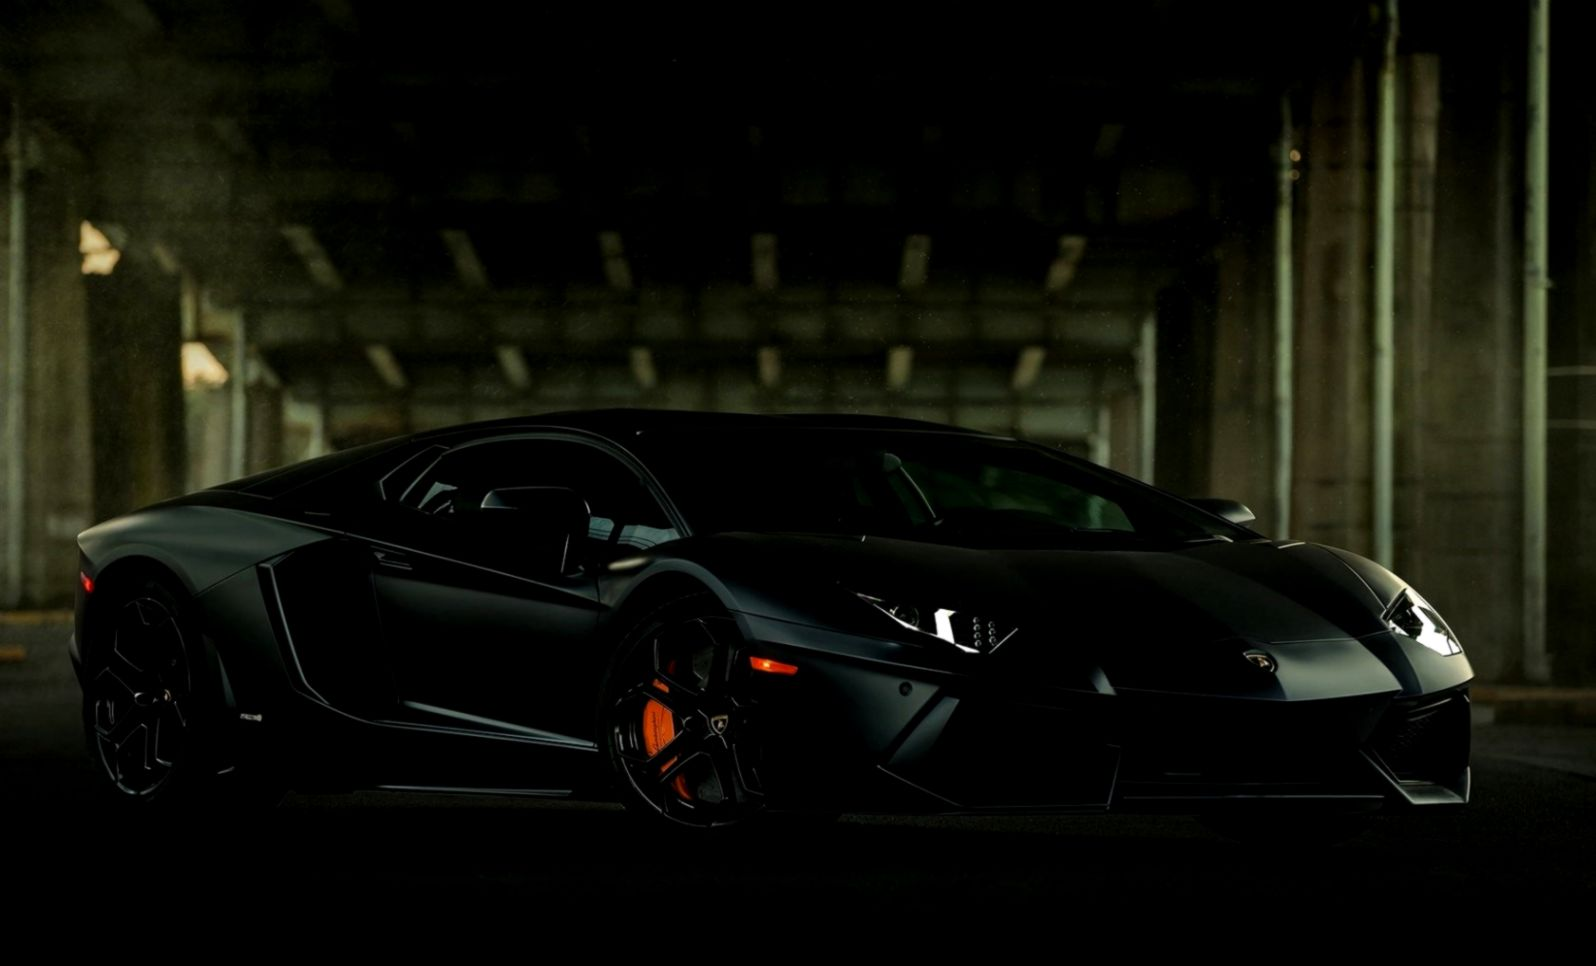 Lamborghini Aventador Roadster Matte Black   wallpaper